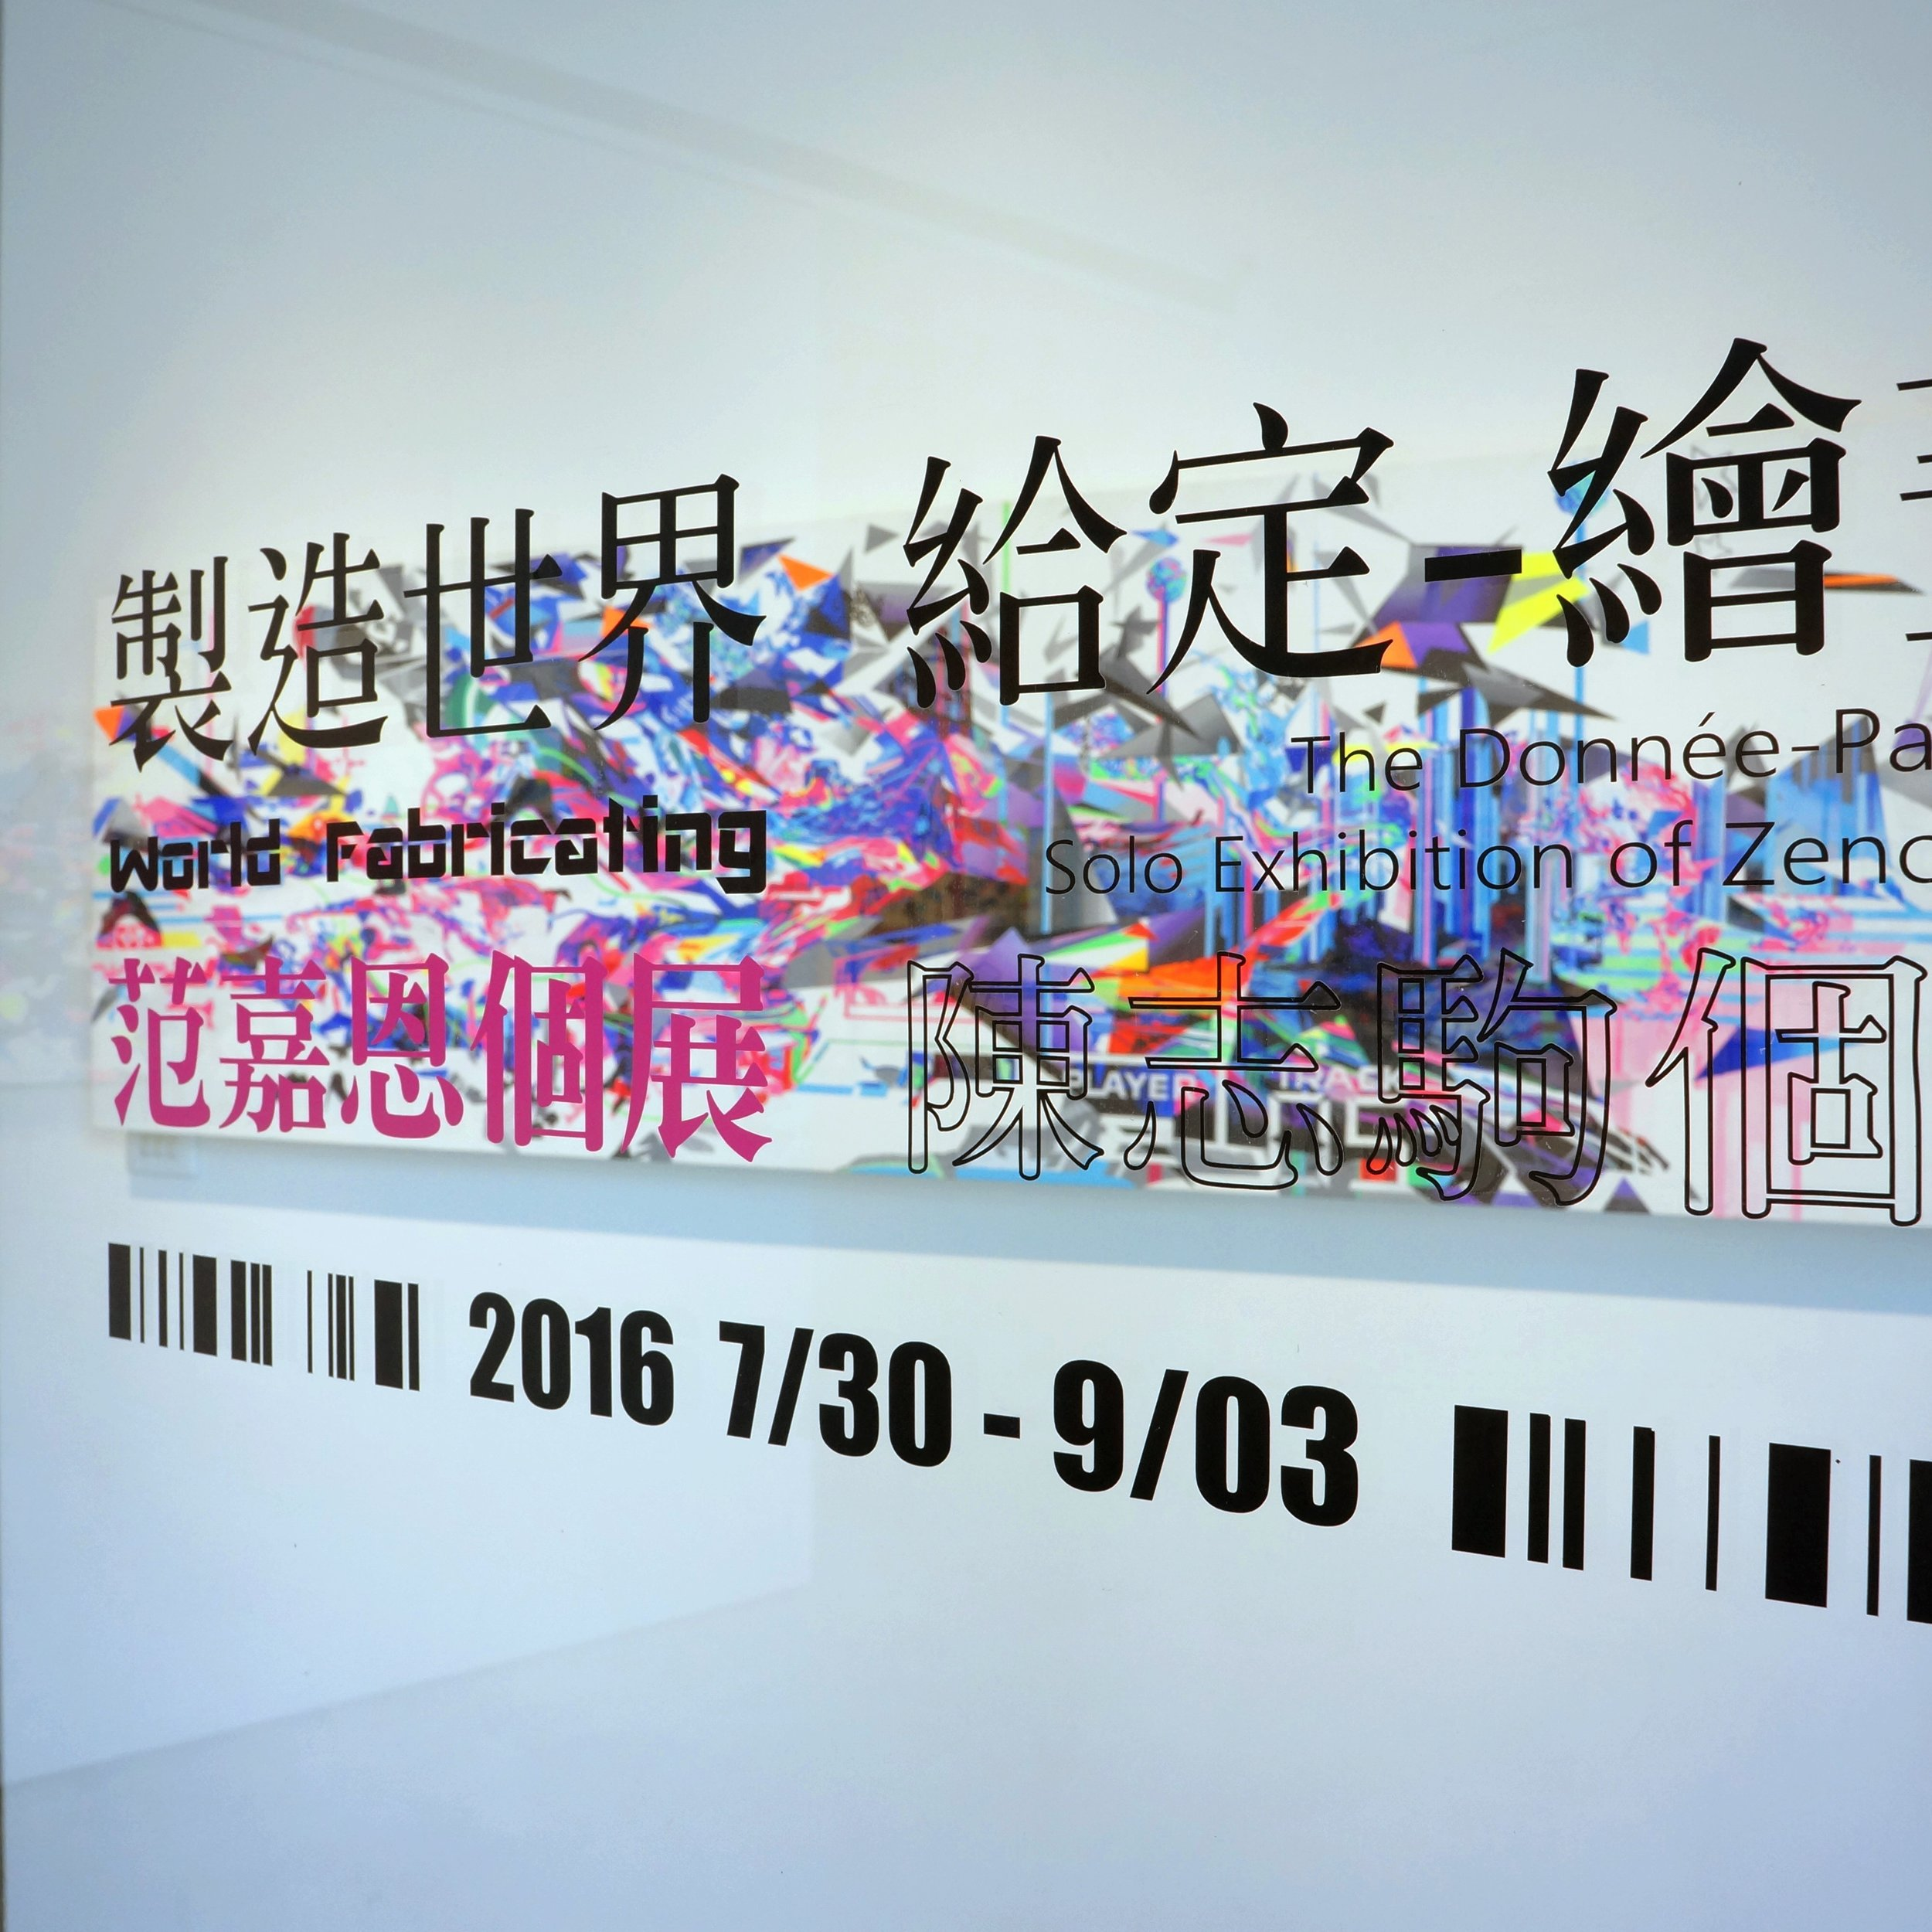 Zeno Chen & Jia-En Fan solo exhibition